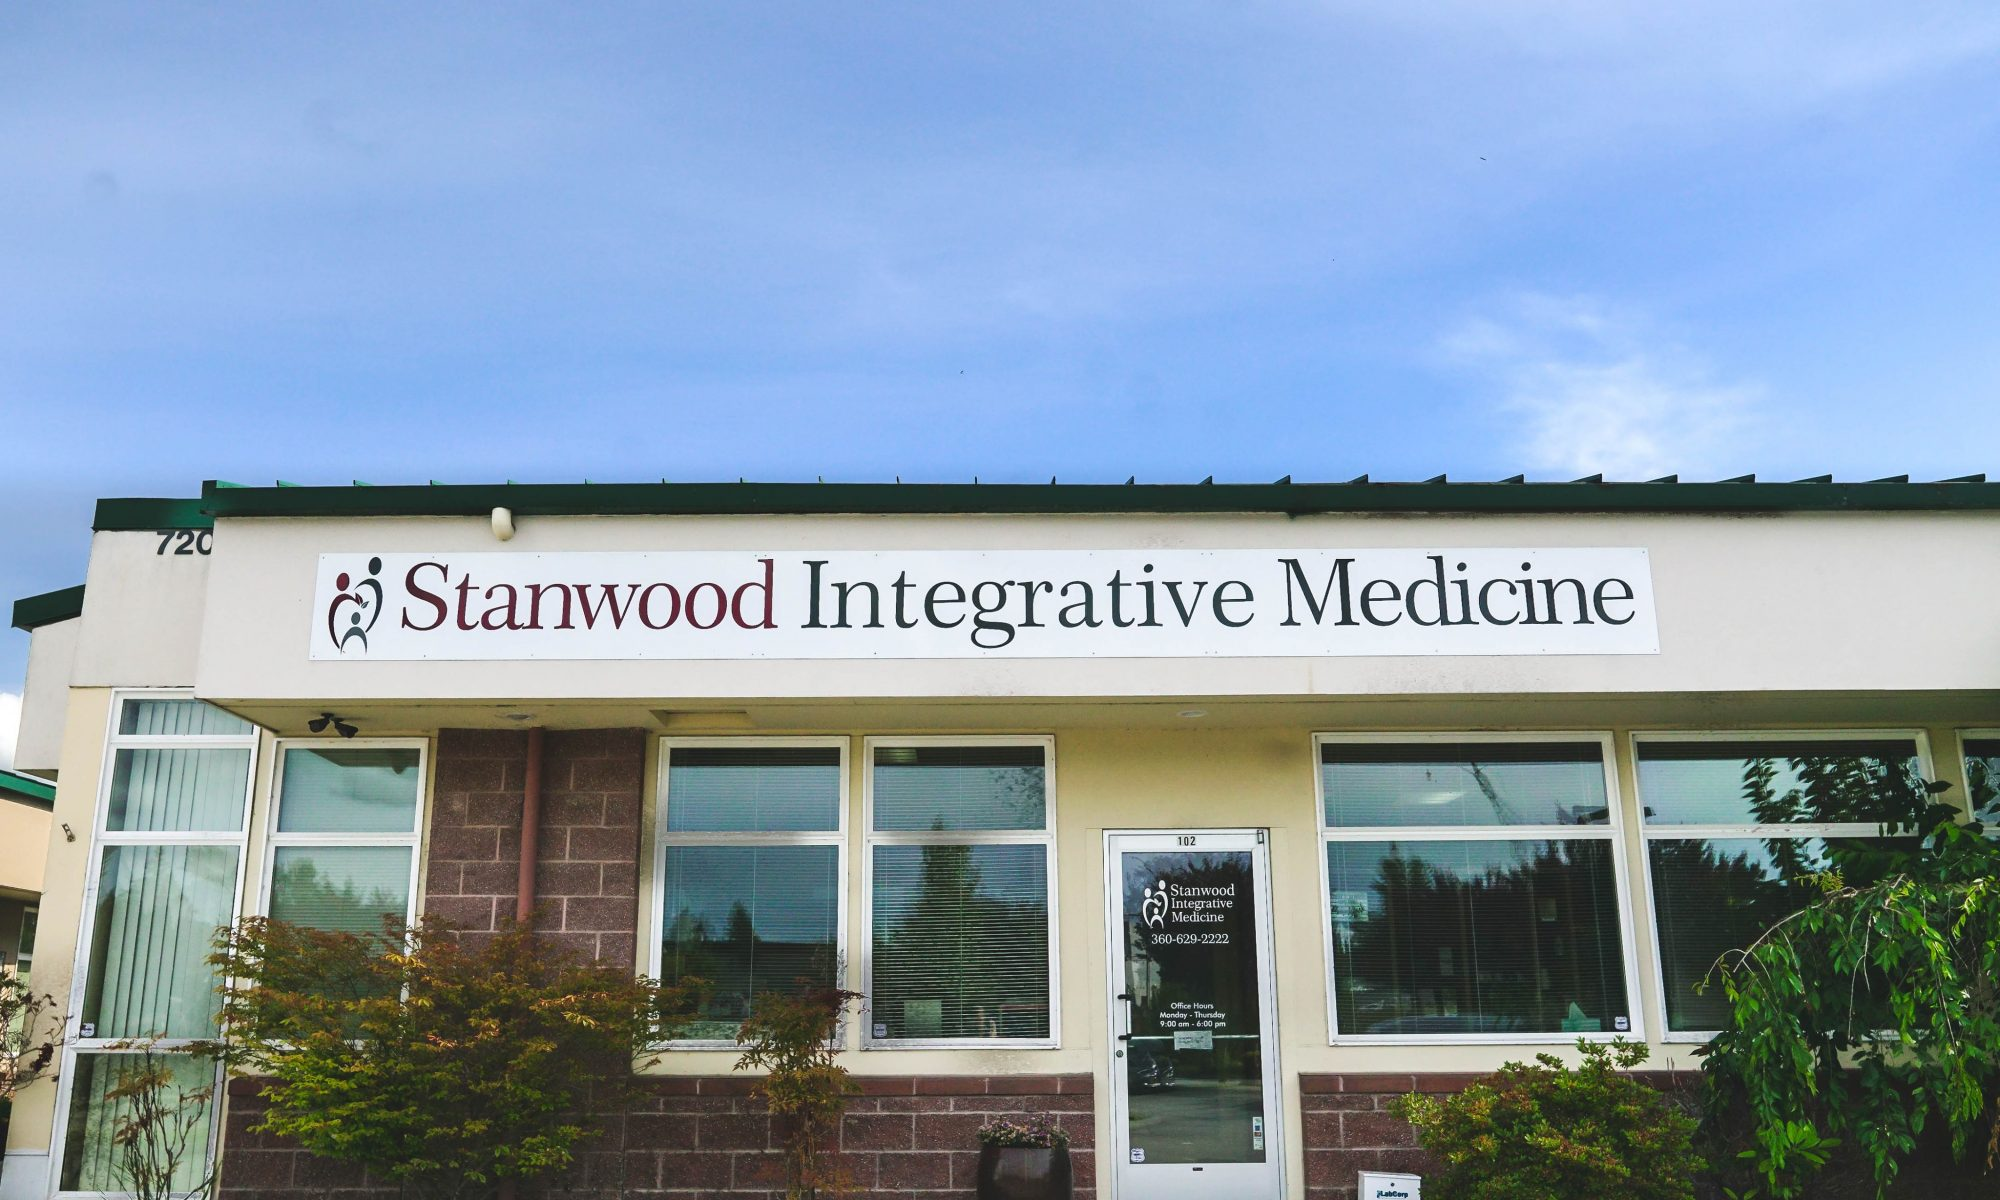 Stanwood Integrative Medicine – Solutions Beyond Prescriptions